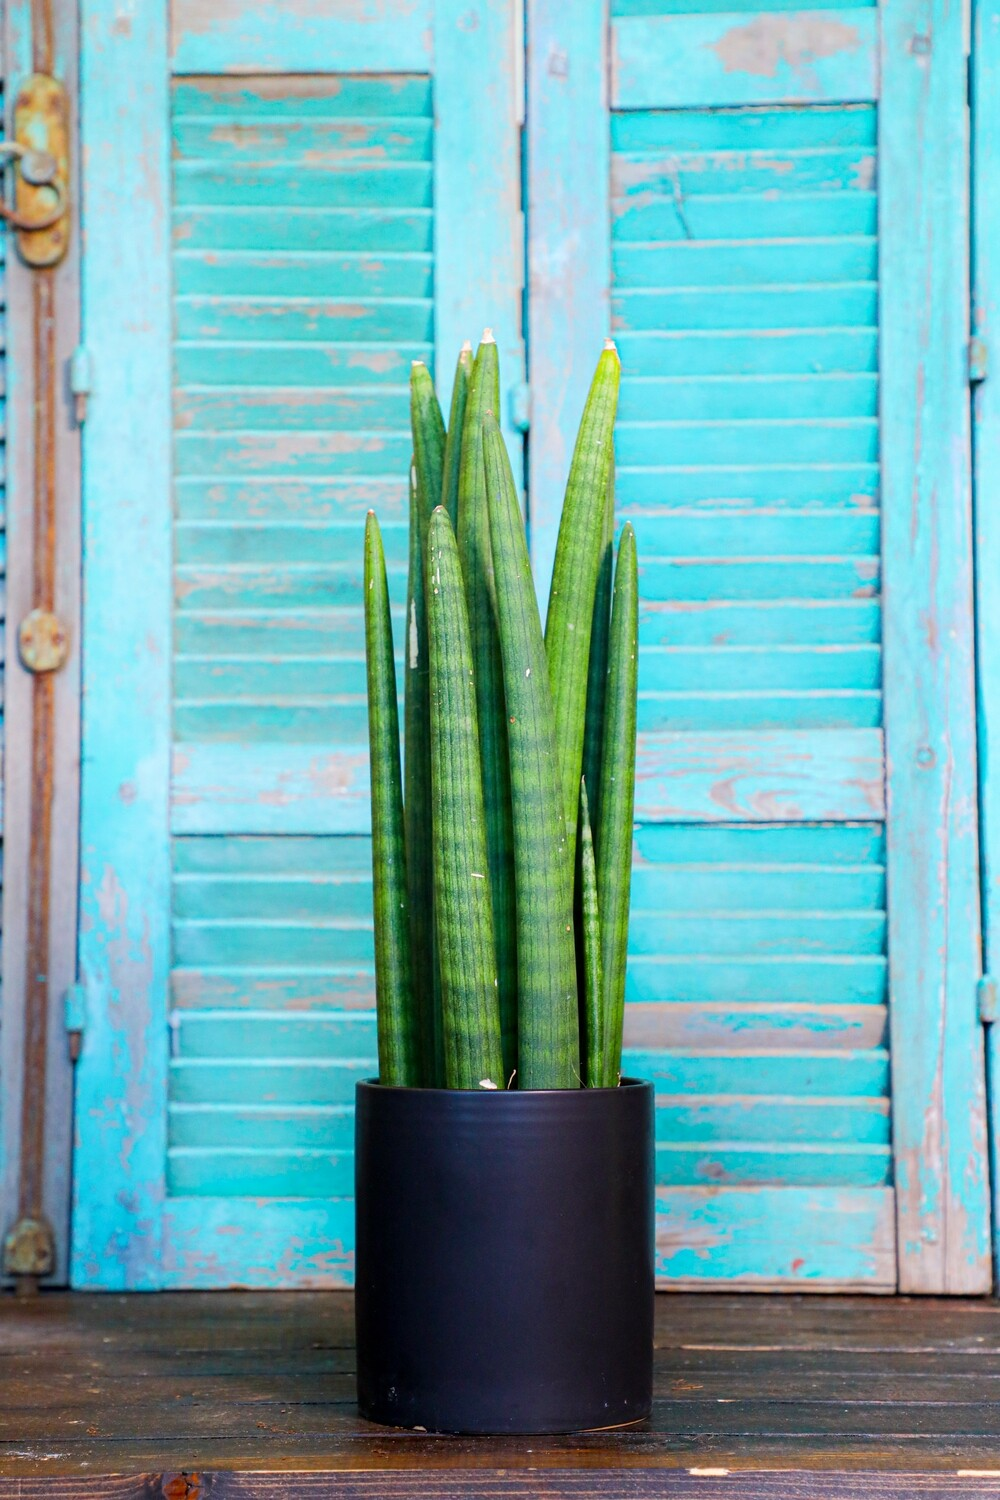 Sansevieria cylindrica (Plant) - Nature by Marc Beyrouthy